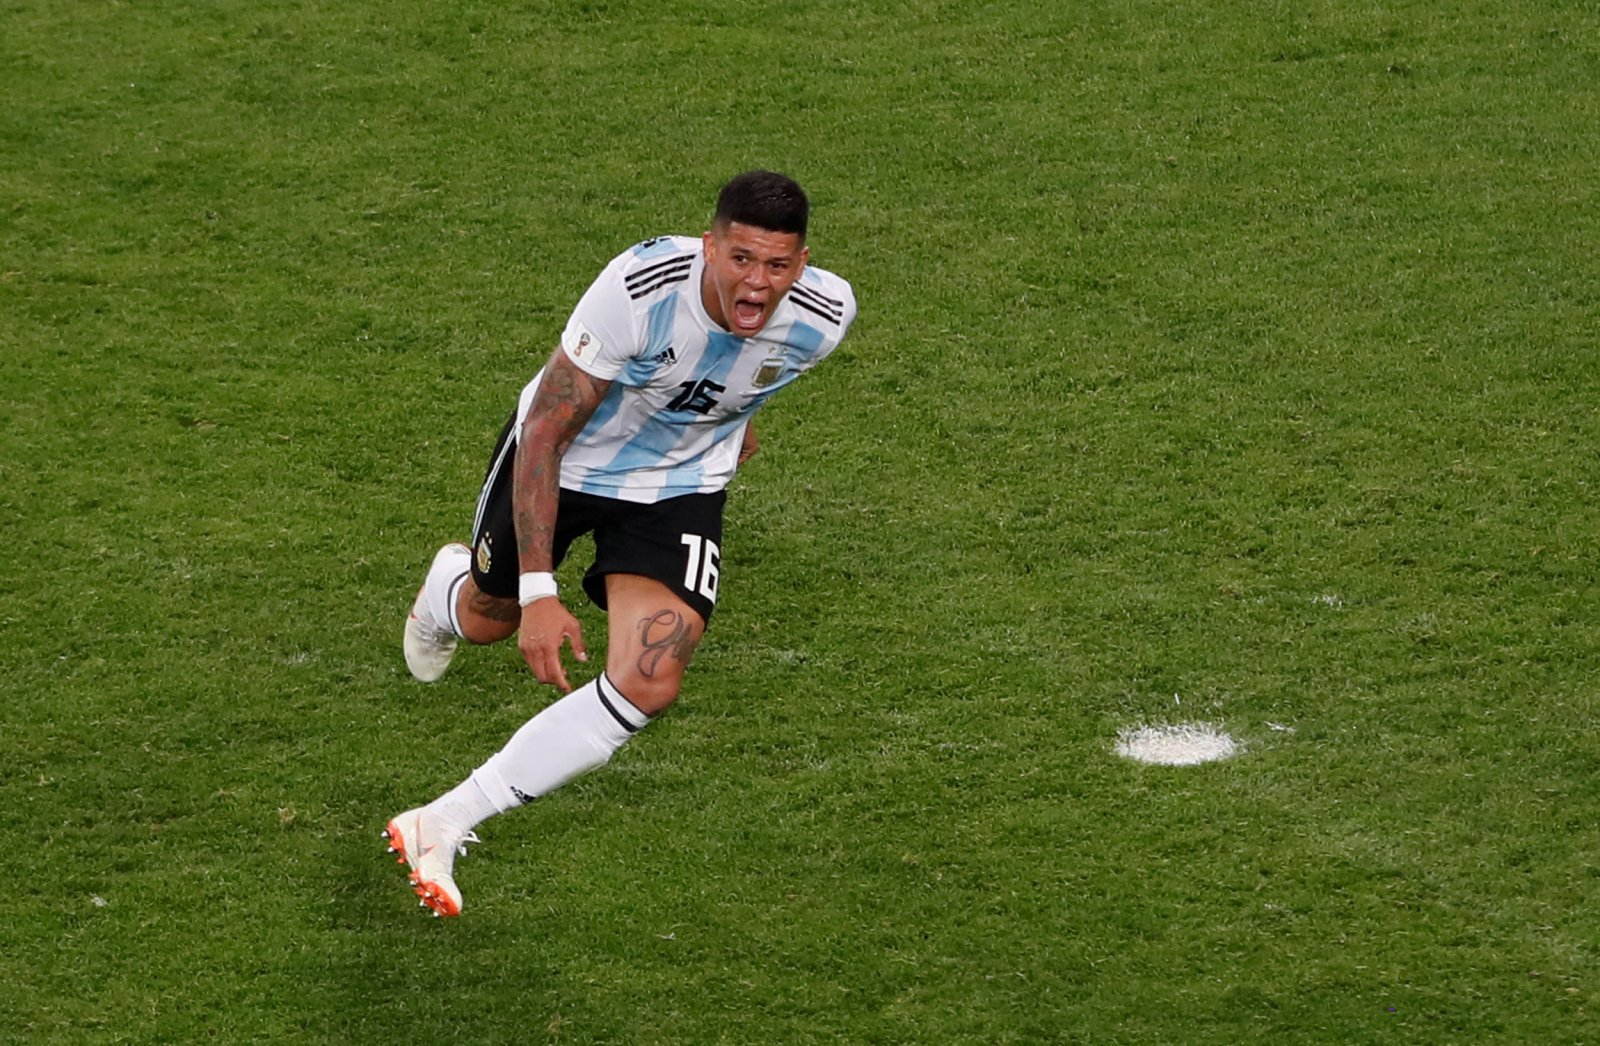 £20m-valued Marcos Rojo could be the defender West Ham are looking for